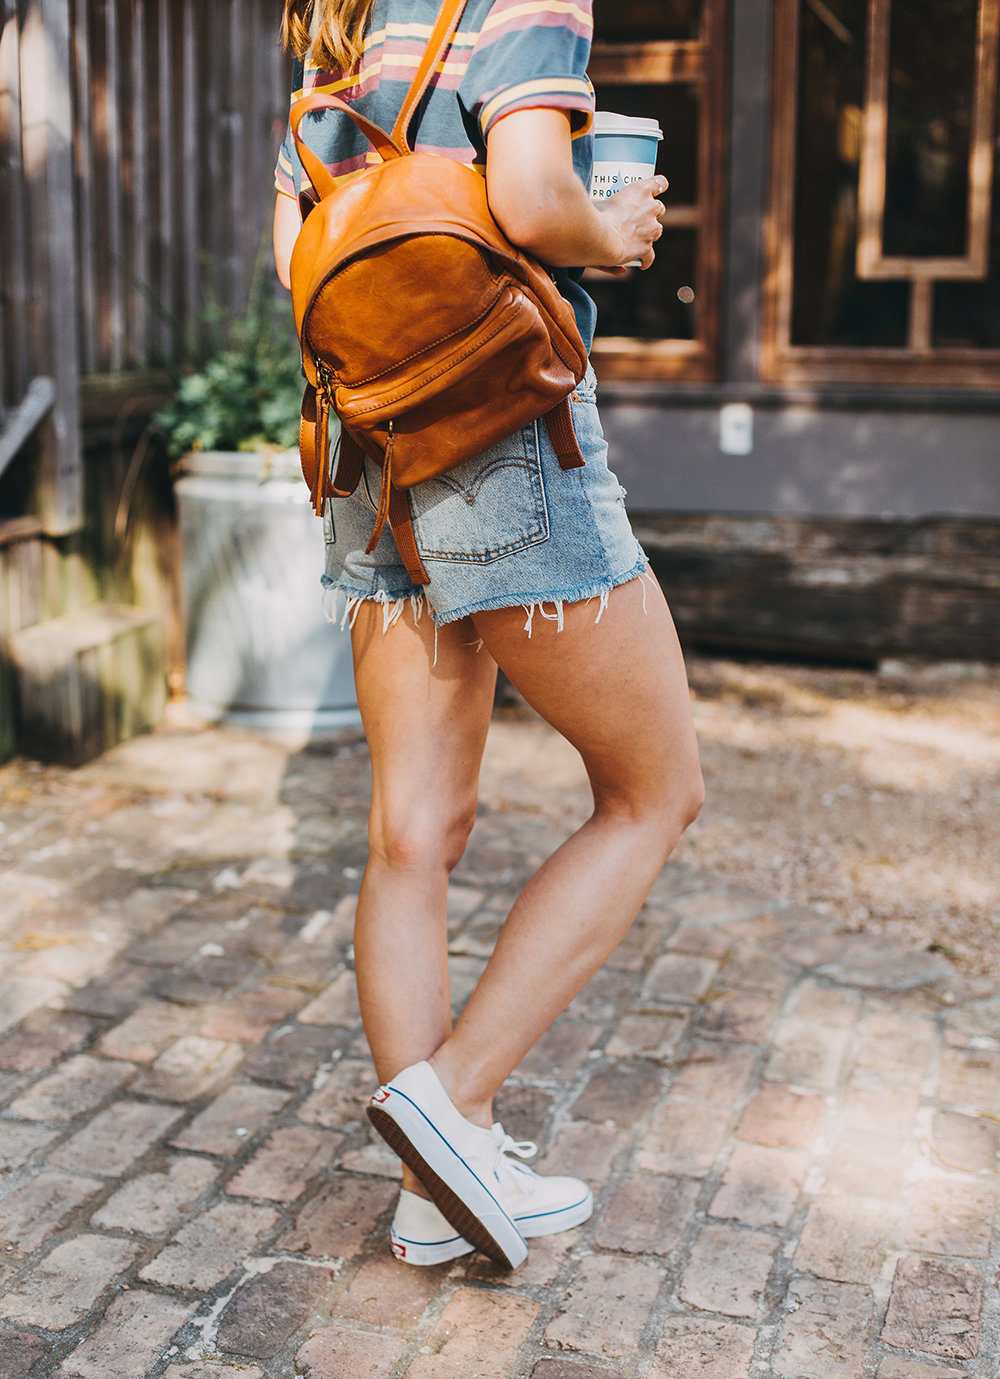 livvyland-blog-olivia-watson-austin-texas-fashion-style-urban-outfitters-striped-vintage-tee-levis-denim-wedgie-shorts-madewell-mini-leather-backpack-2